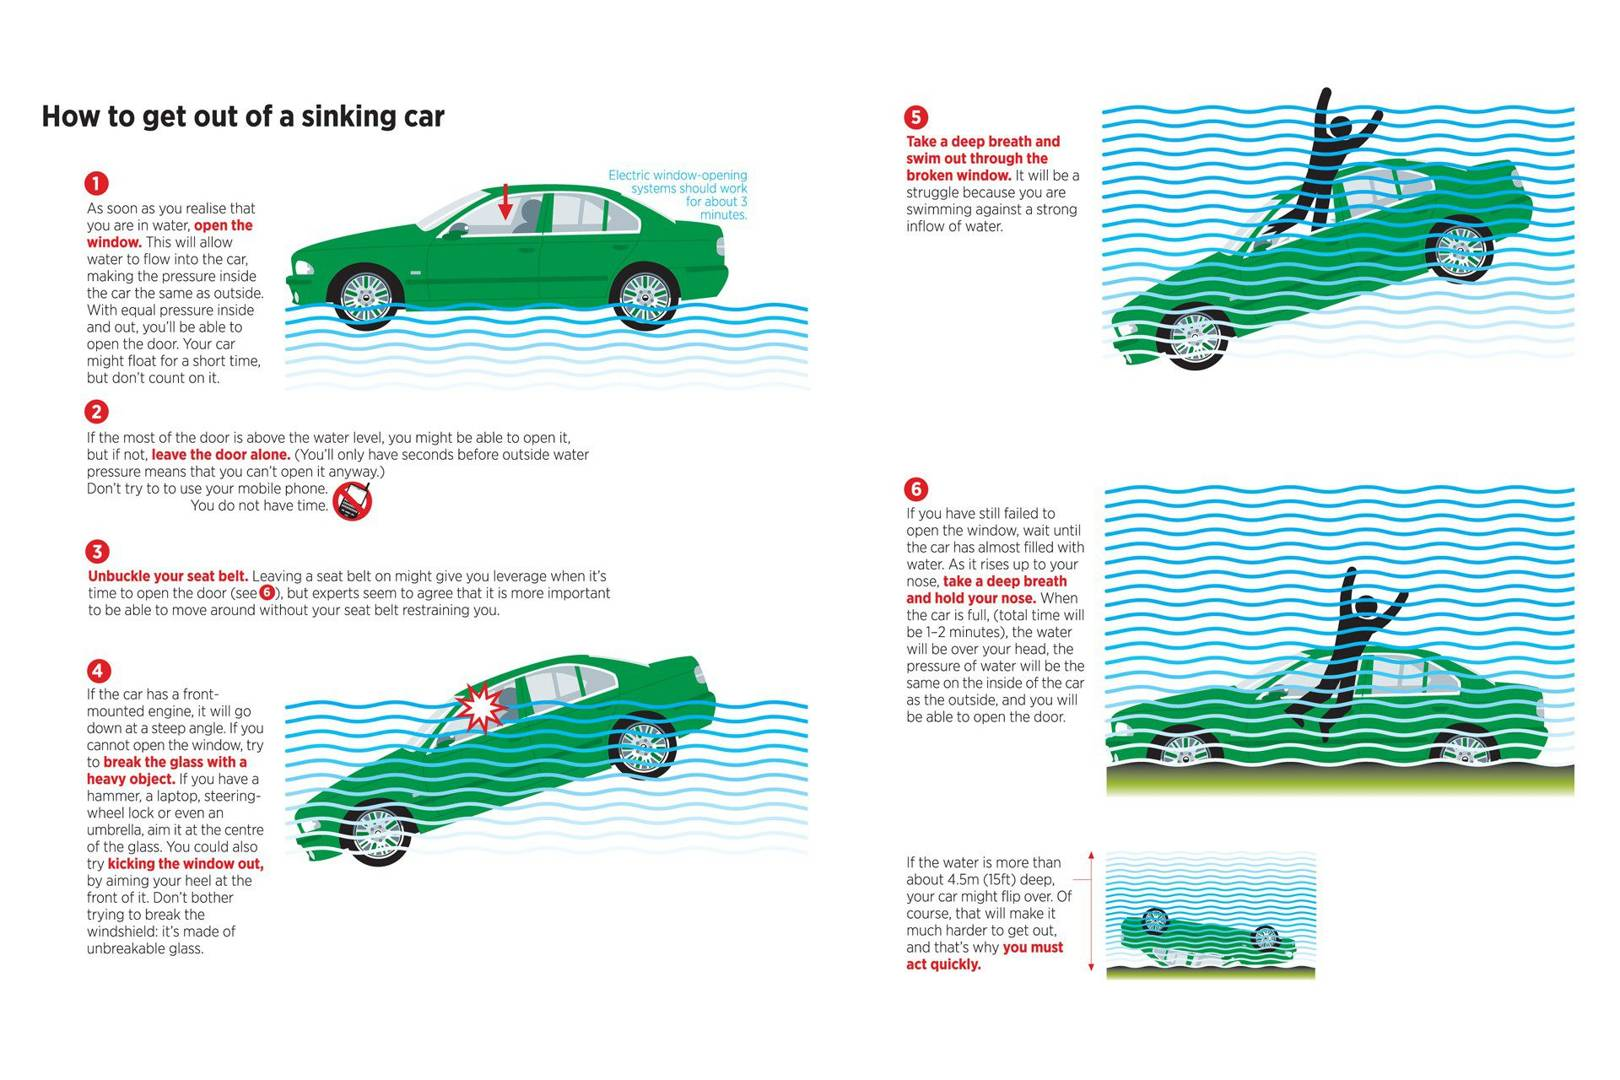 How To Escape A Sinking Car And Other Useful Ilrated Guides Wired Uk